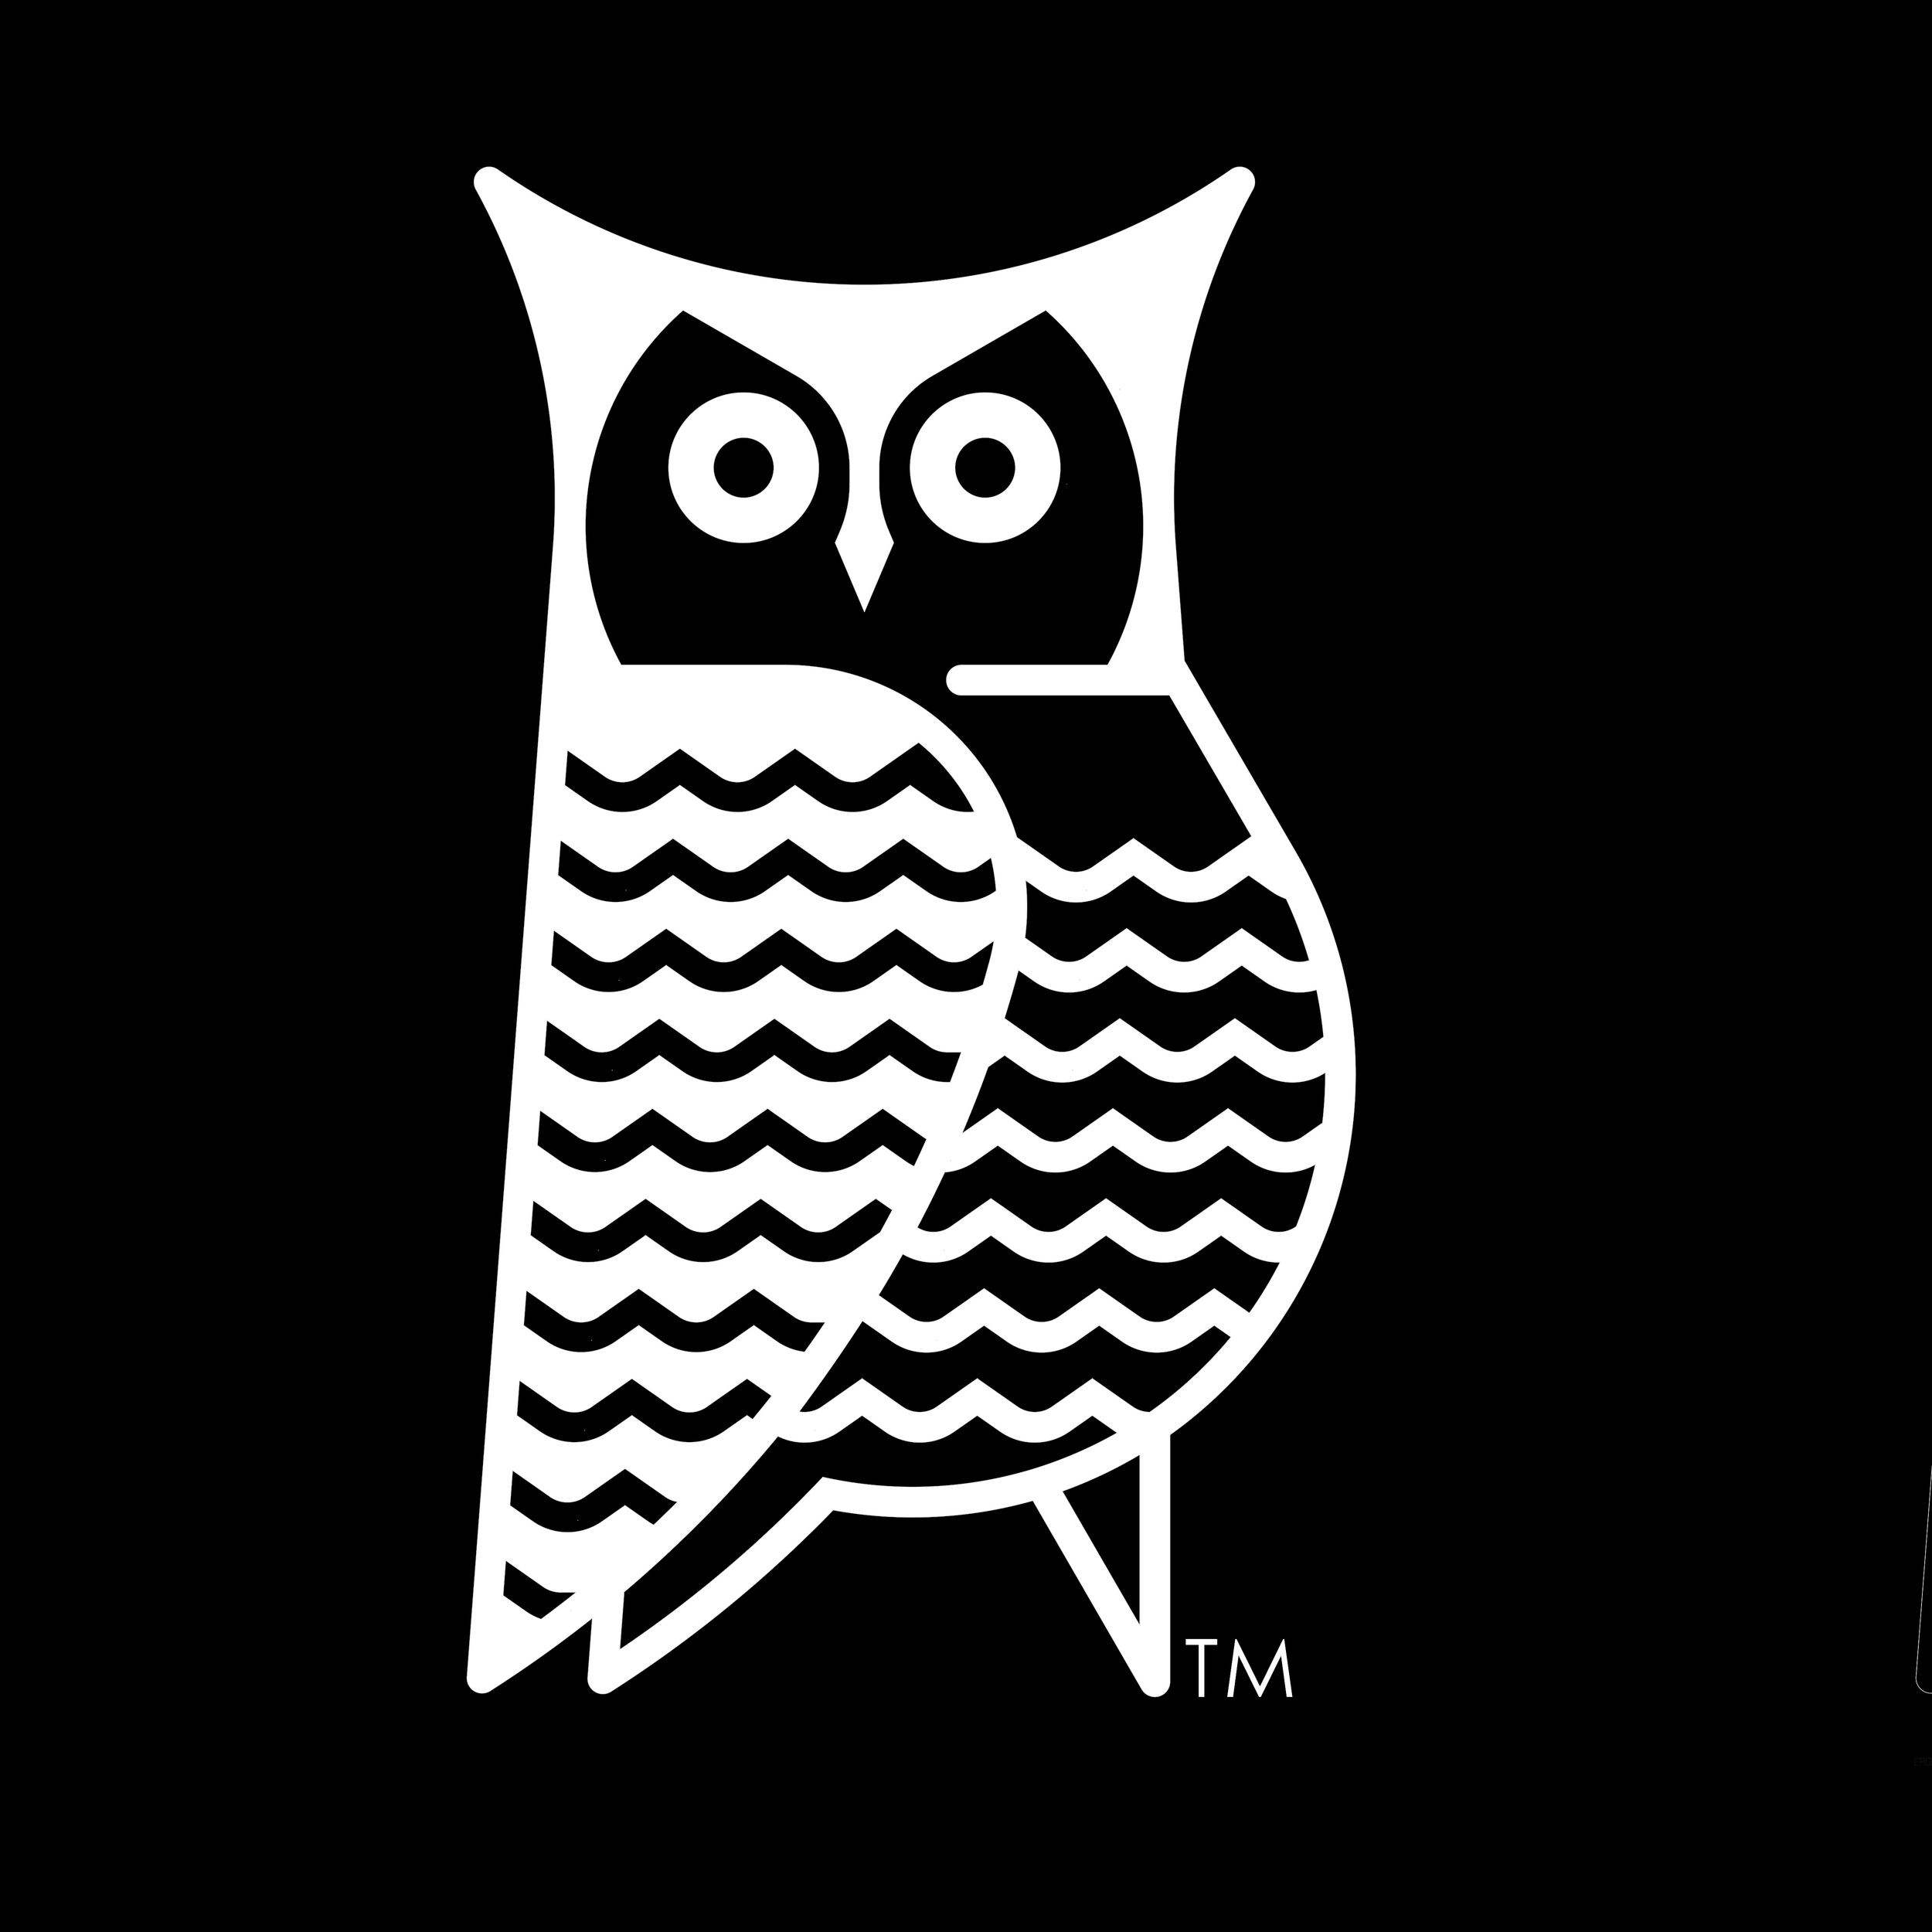 stamp ™ OWL BLACK.jpg